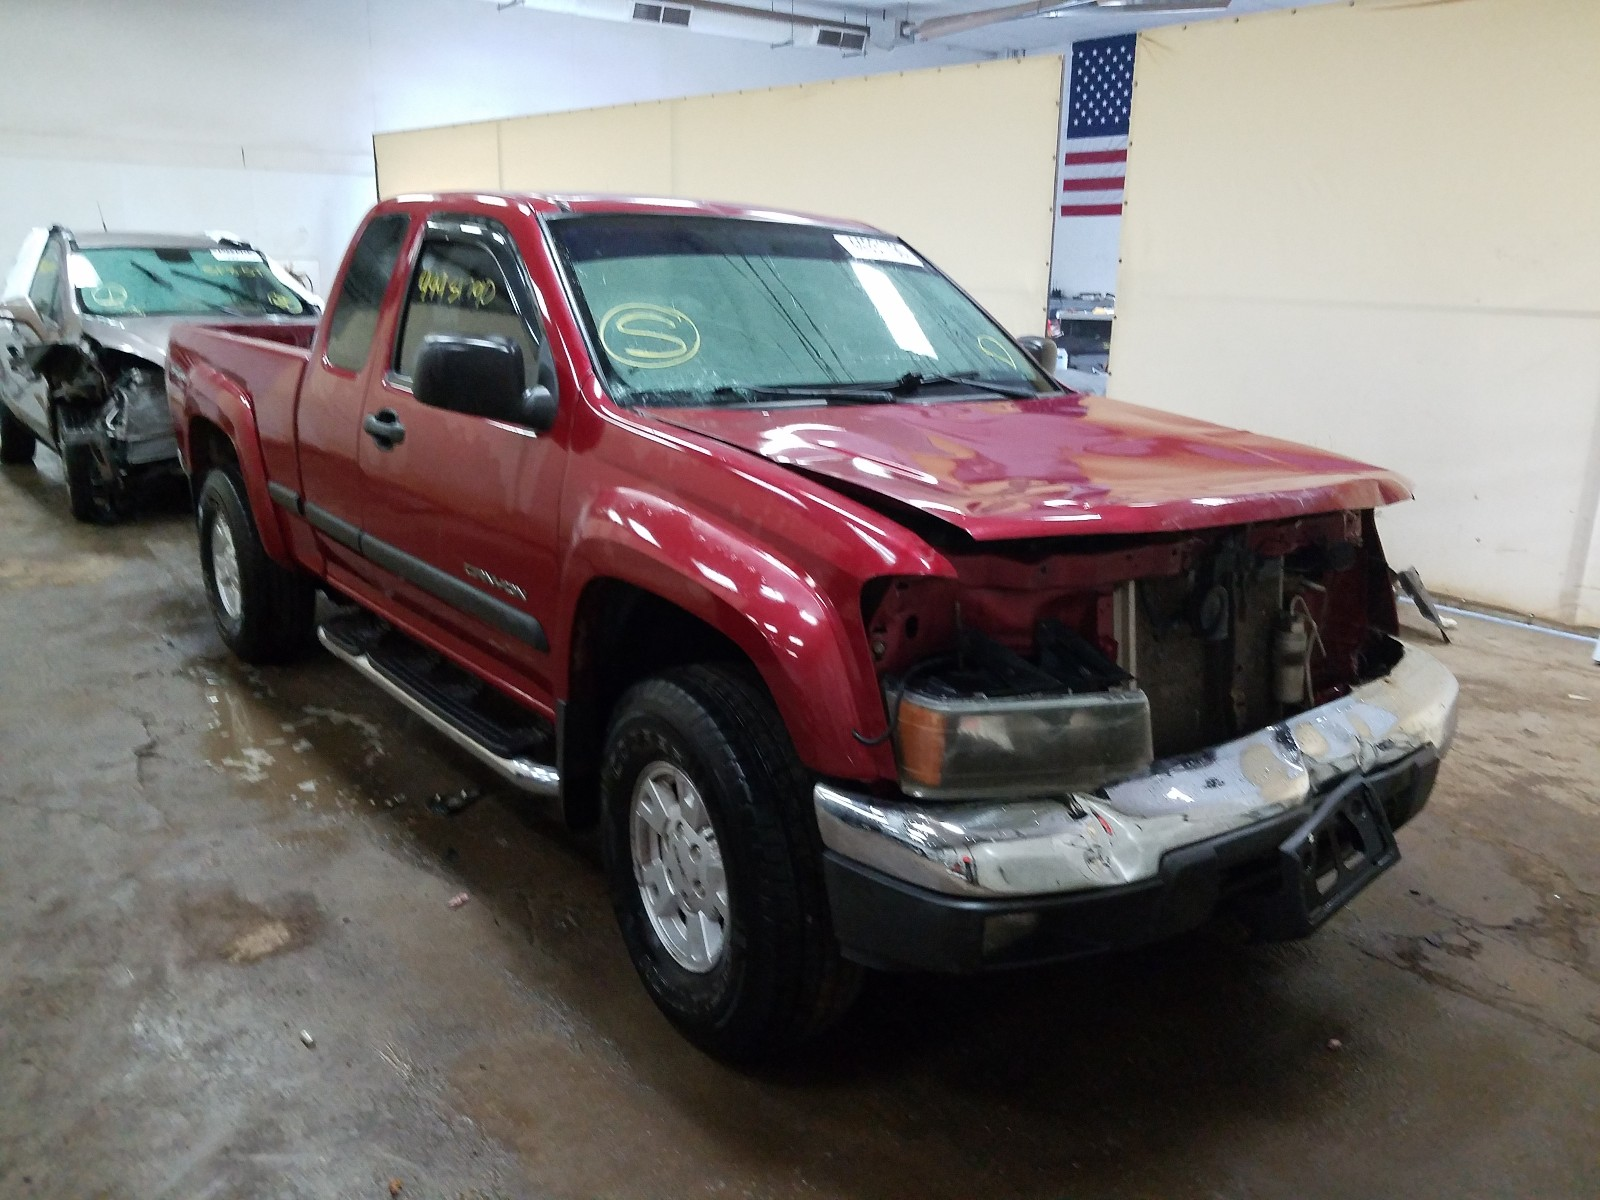 2005 gmc canyon for sale at copart davison mi lot 44931790 salvagereseller com salvagereseller com